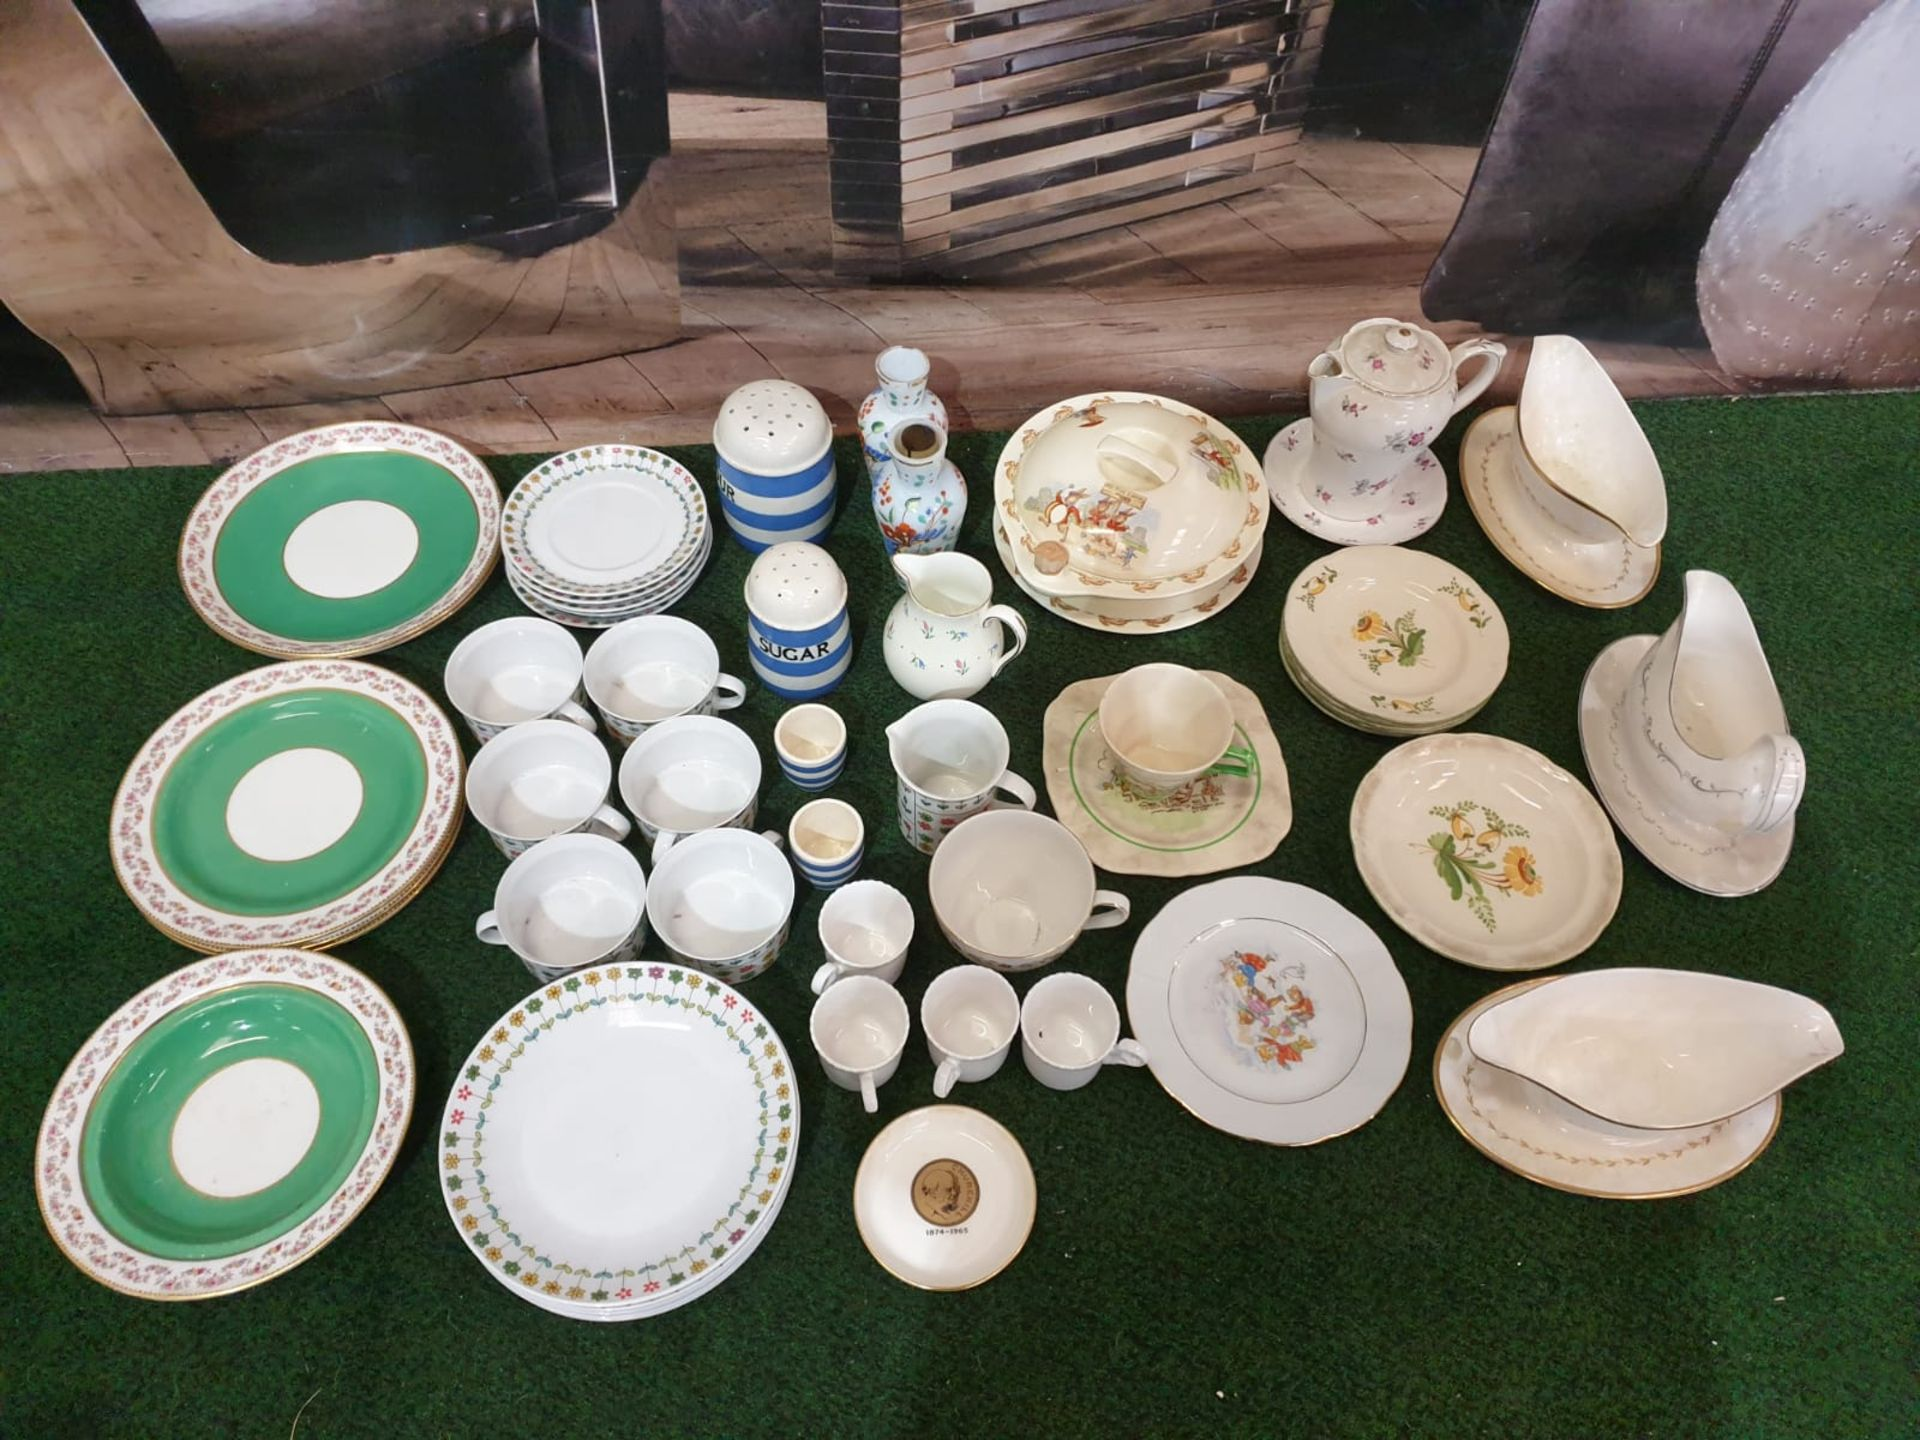 A Large quantity of tableware various patterns and manufacturers including Royal Doulton, Shelley, H - Image 3 of 15